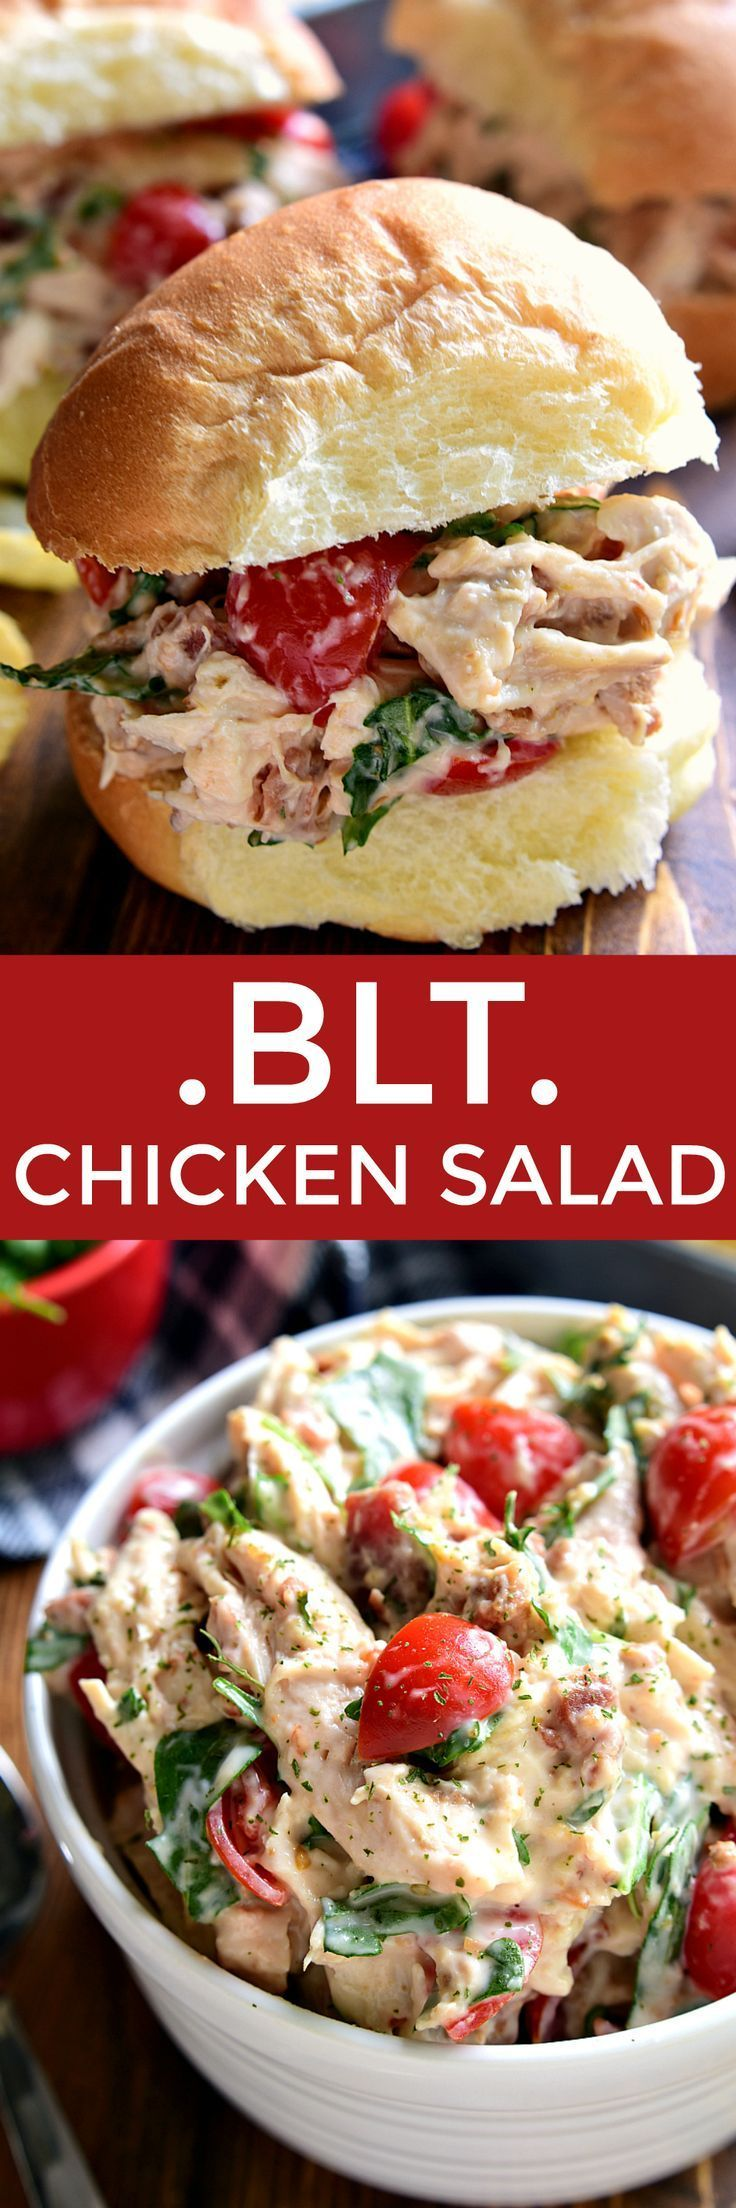 This BLT Chicken Salad combines all the flavors of BLT's in a creamy chicken salad. トリ胸肉(コンビニチキン可)、レタス、トマトその他、マヨとマスタード&チーズスプレッドとパンでどうぞ。